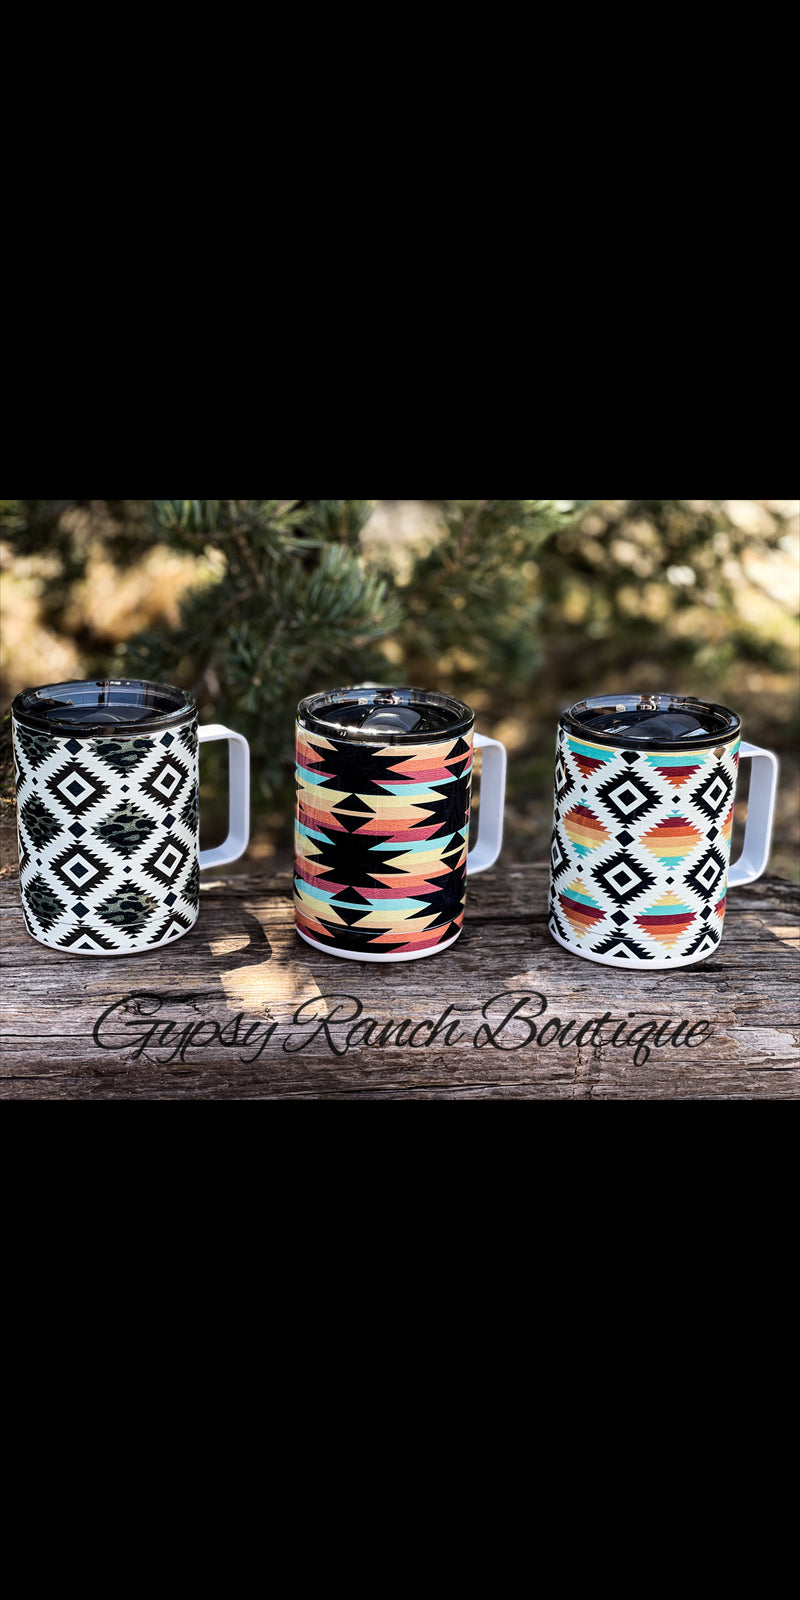 Aztec Stainless Mug Cups